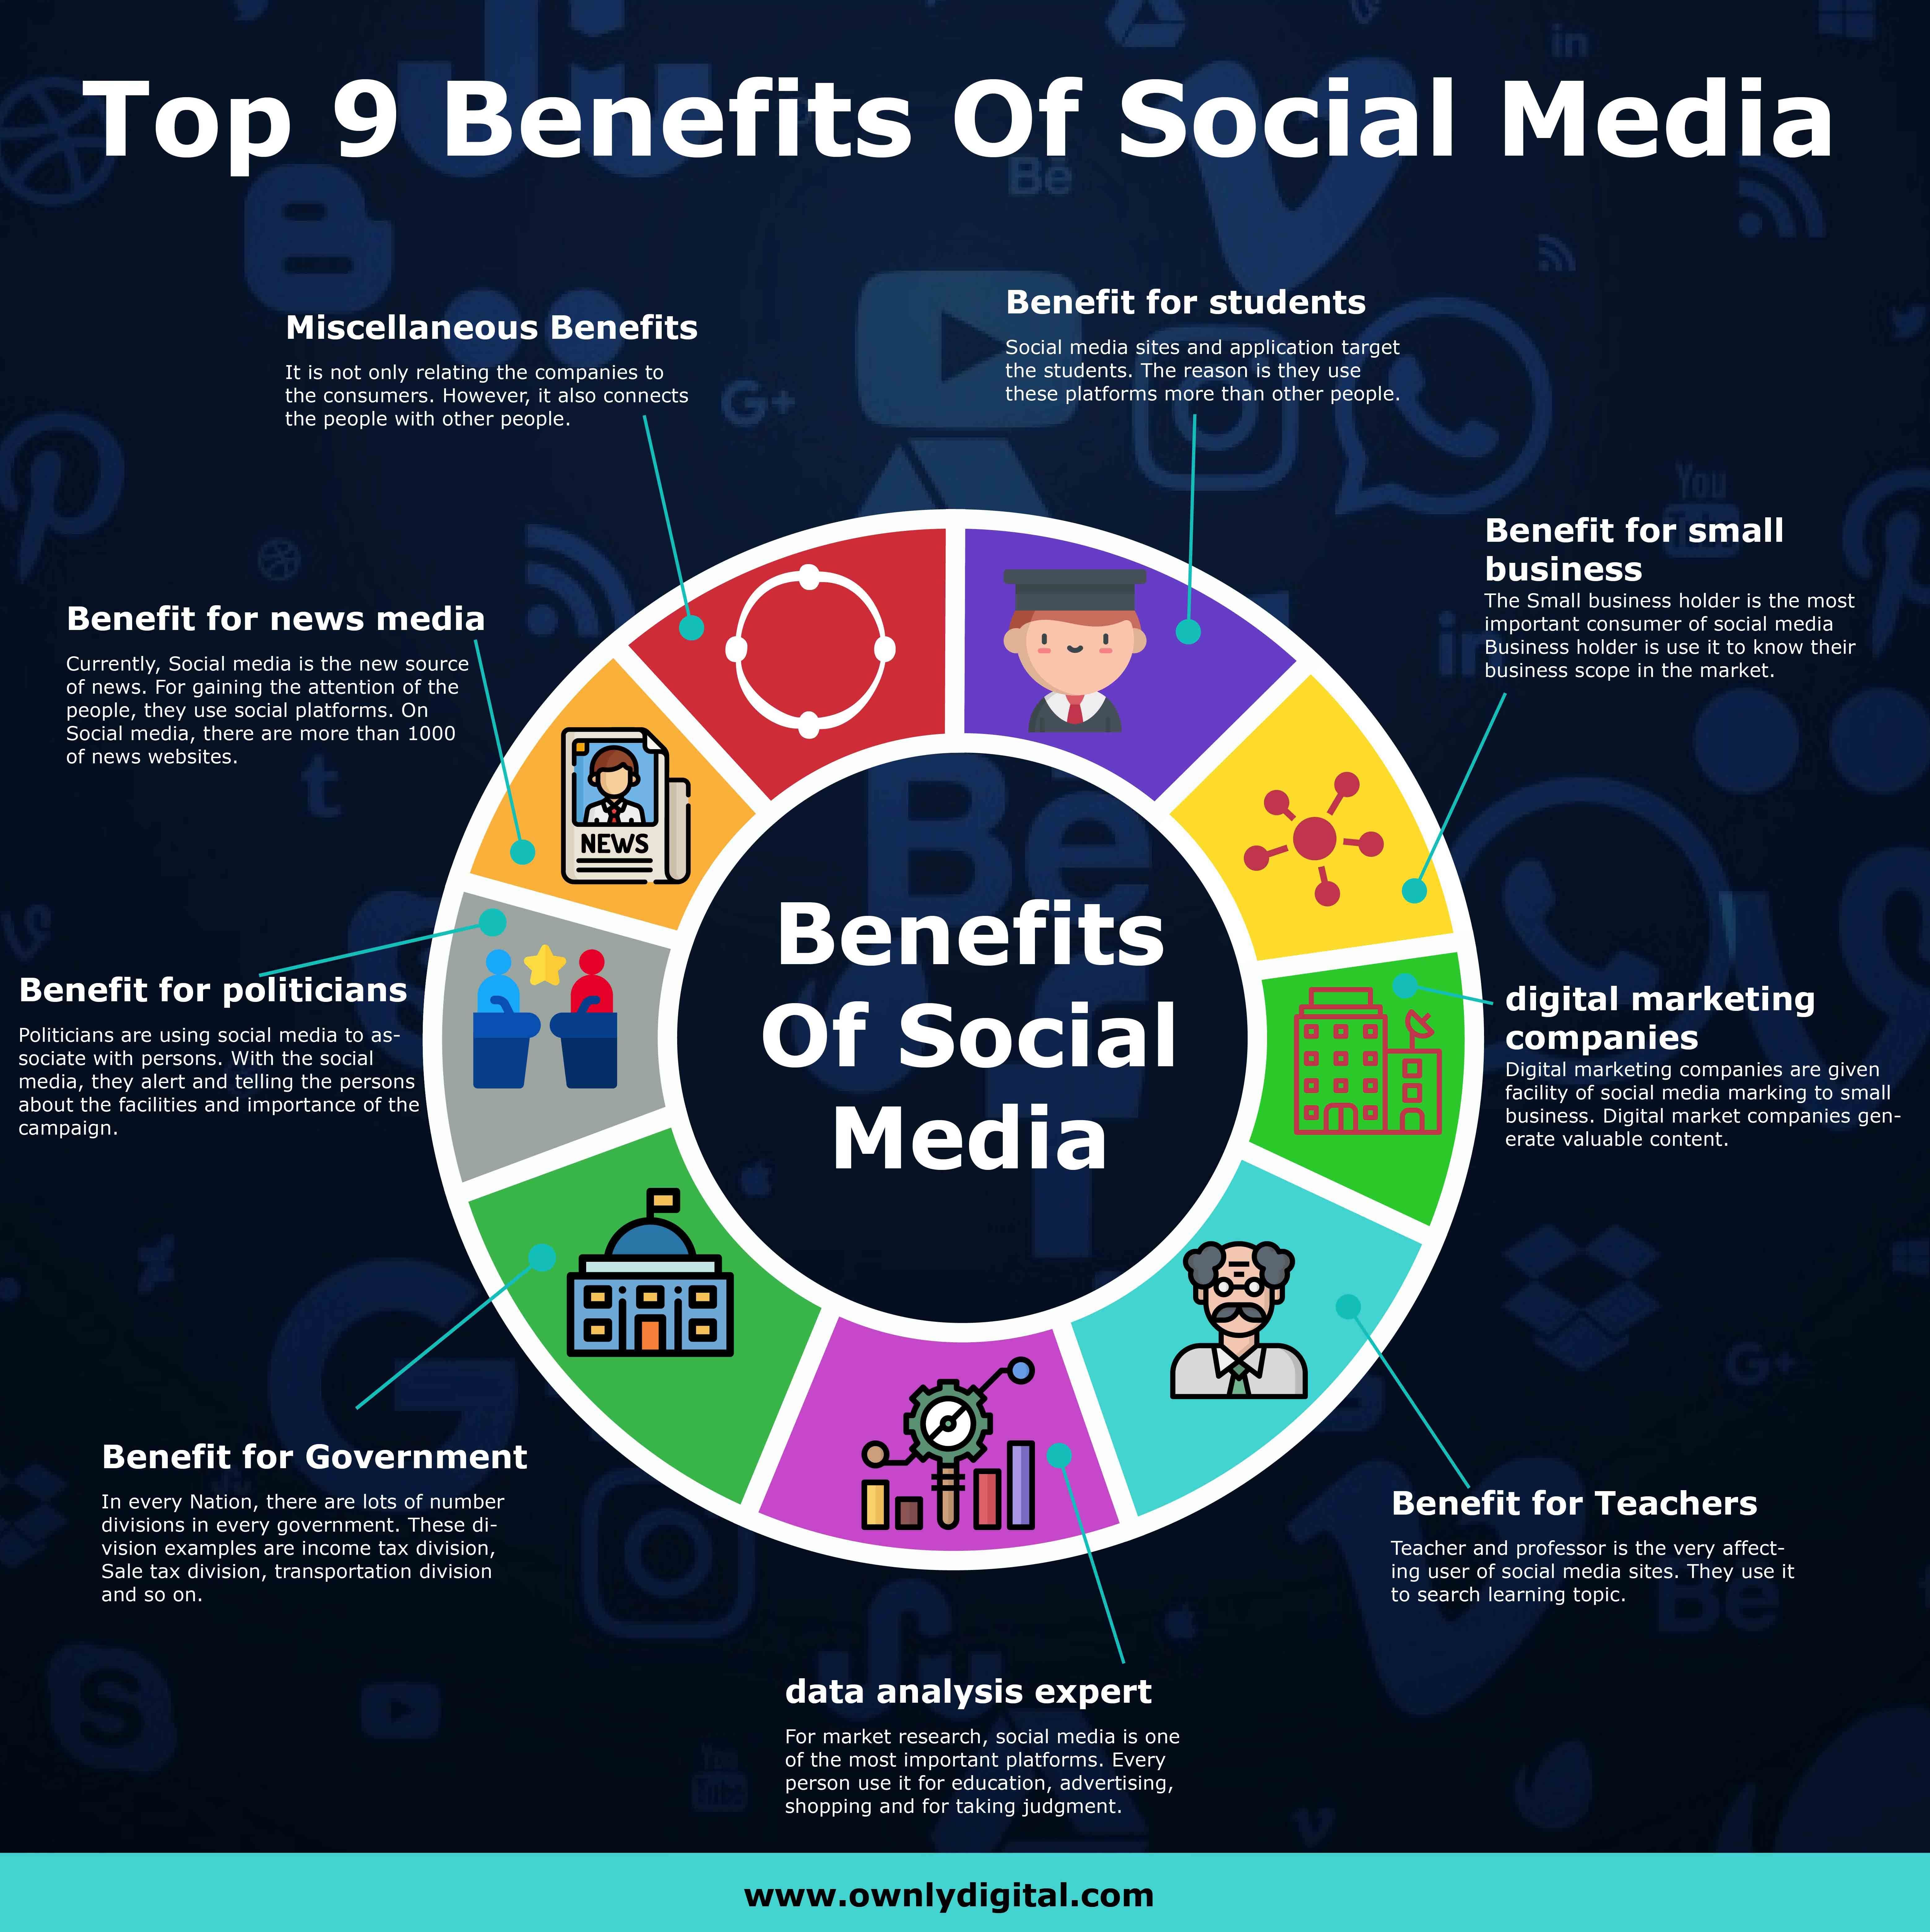 Benefits Of Social Media To The Rest Of The World Social Media Educational Infographic Social